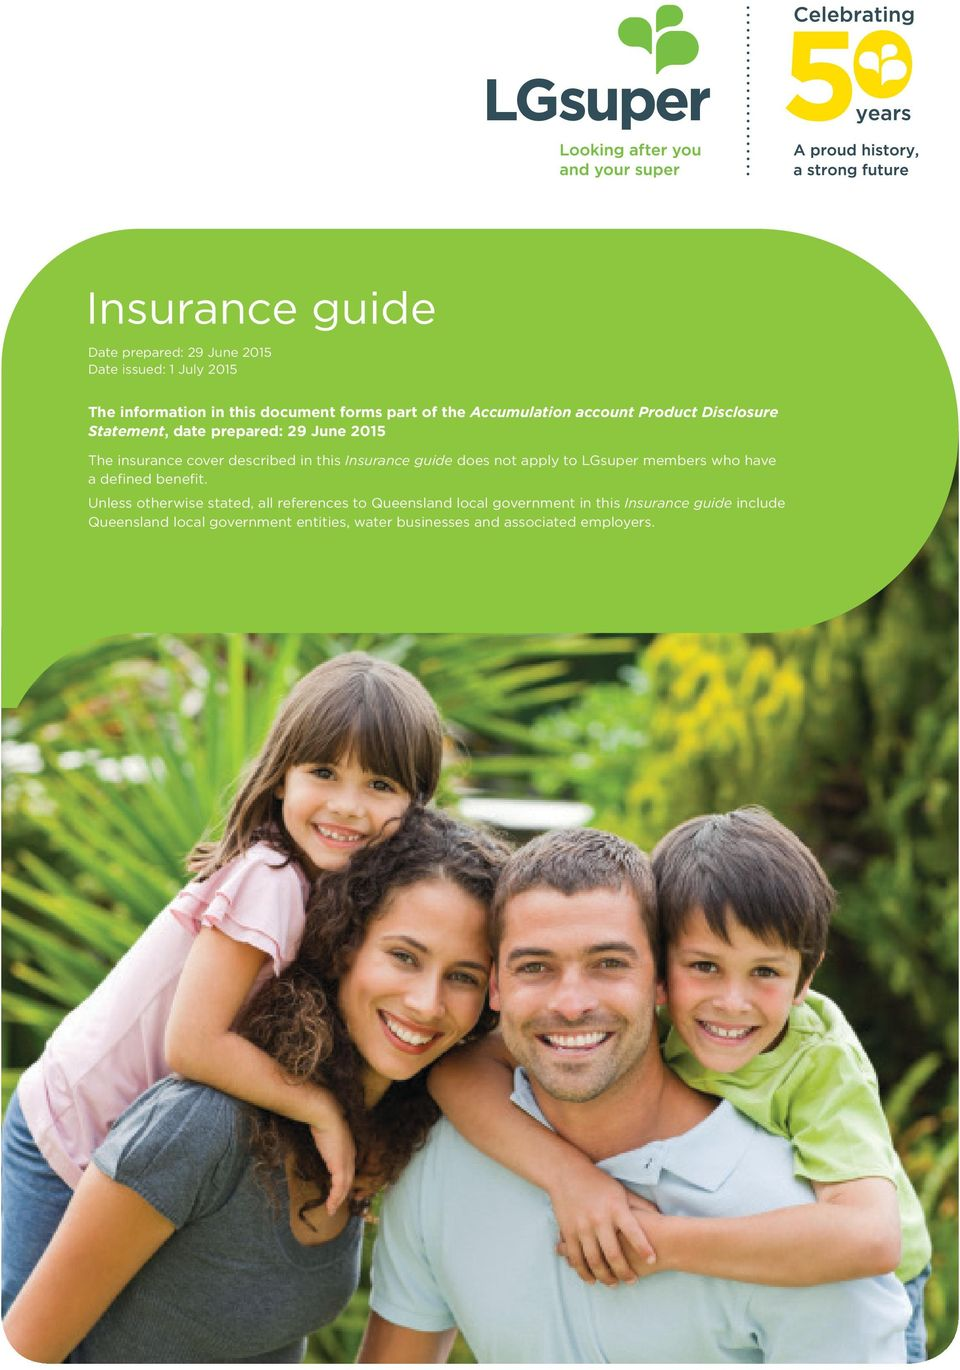 Insurance guide does not apply to LGsuper members who have a defined benefit.